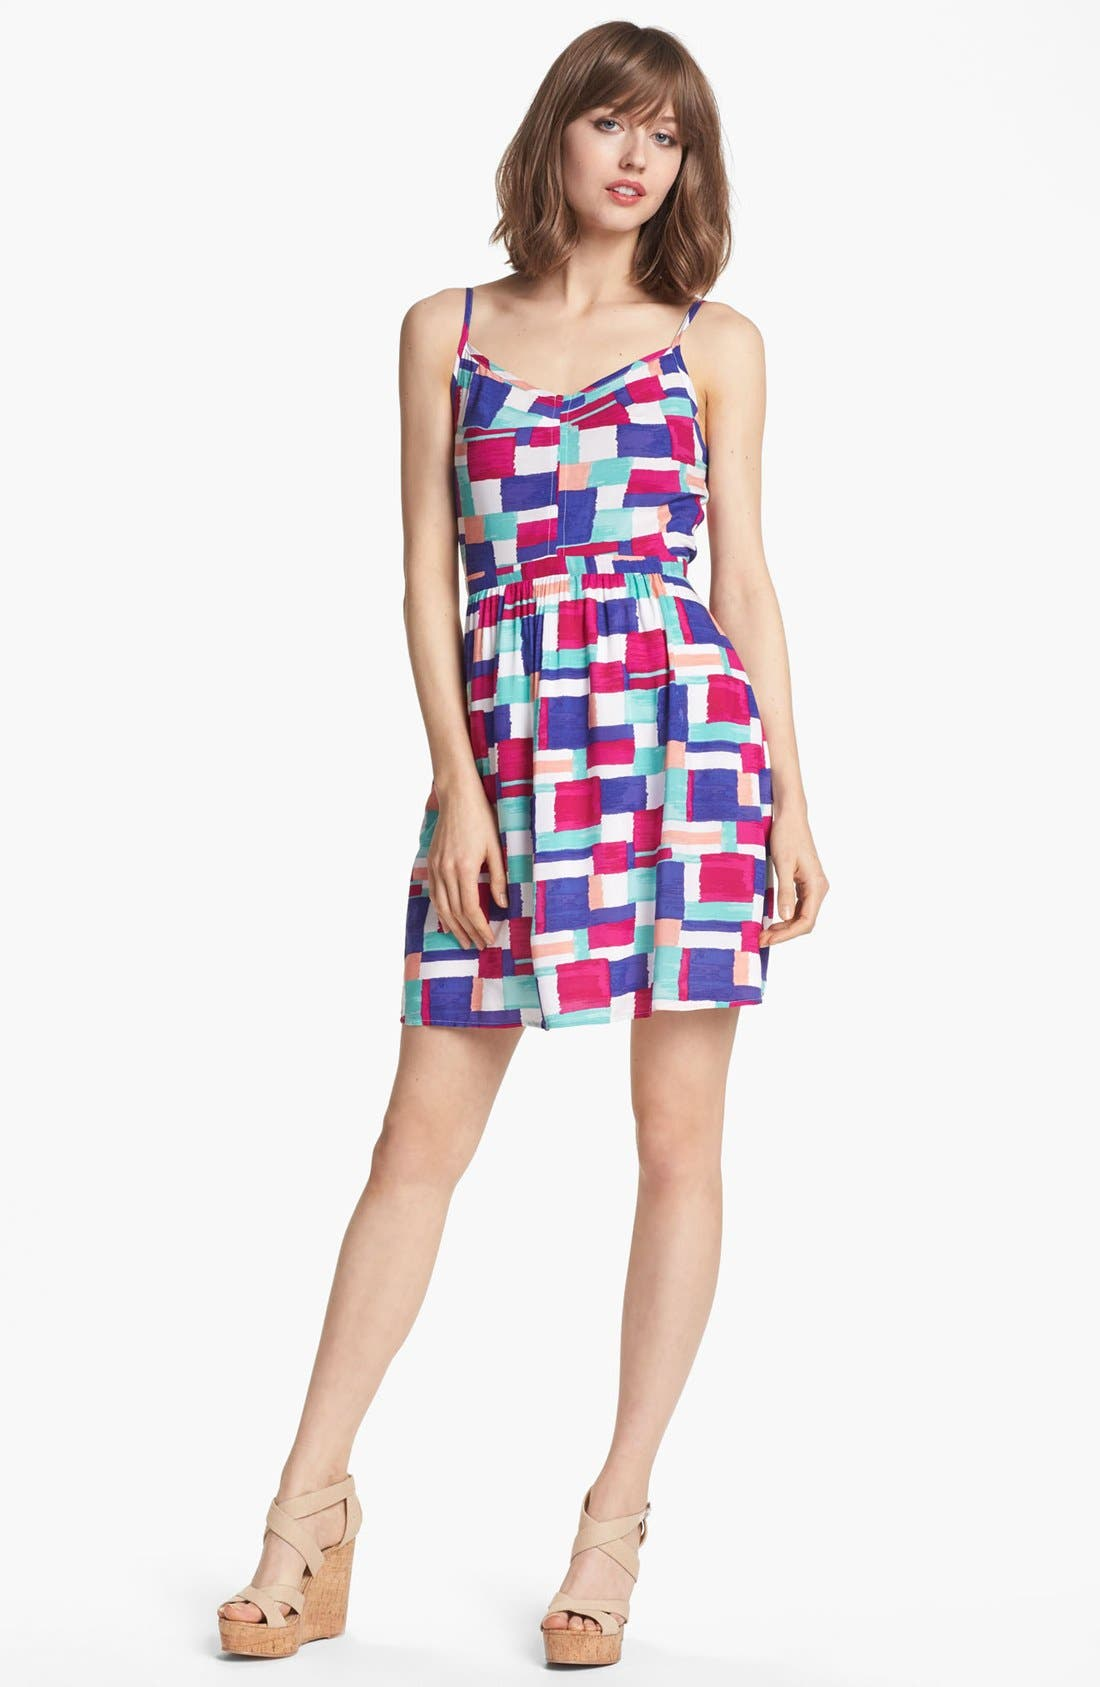 Alternate Image 1 Selected - Splendid 'Painted Patchwork' Print Dress